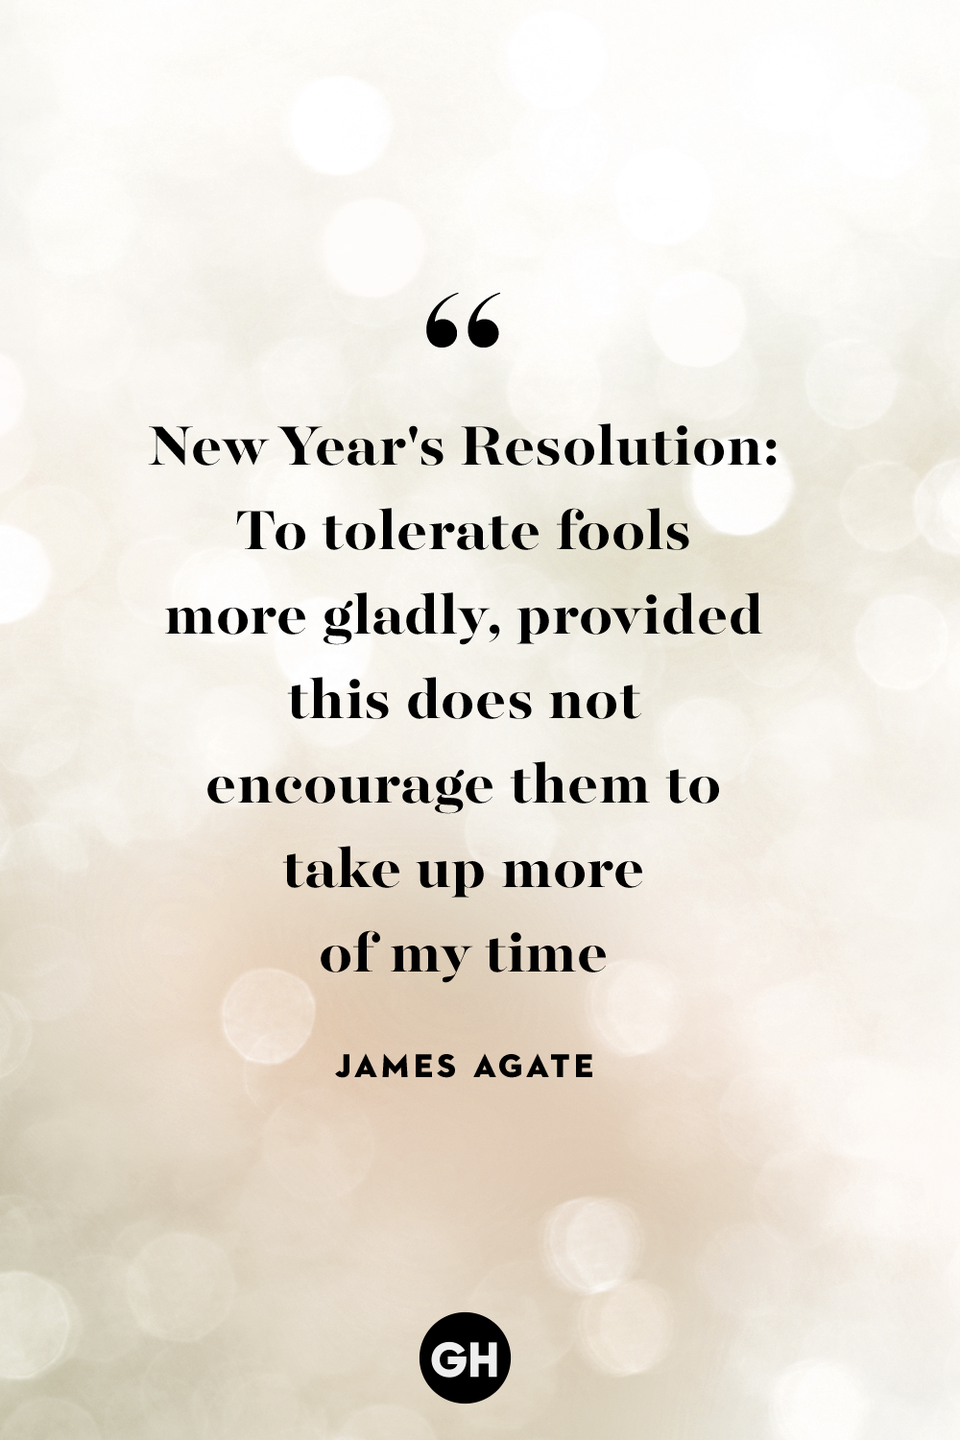 <p>New Year's Resolution: To tolerate fools more gladly, provide this does not encourage them to take up more of my time.</p>